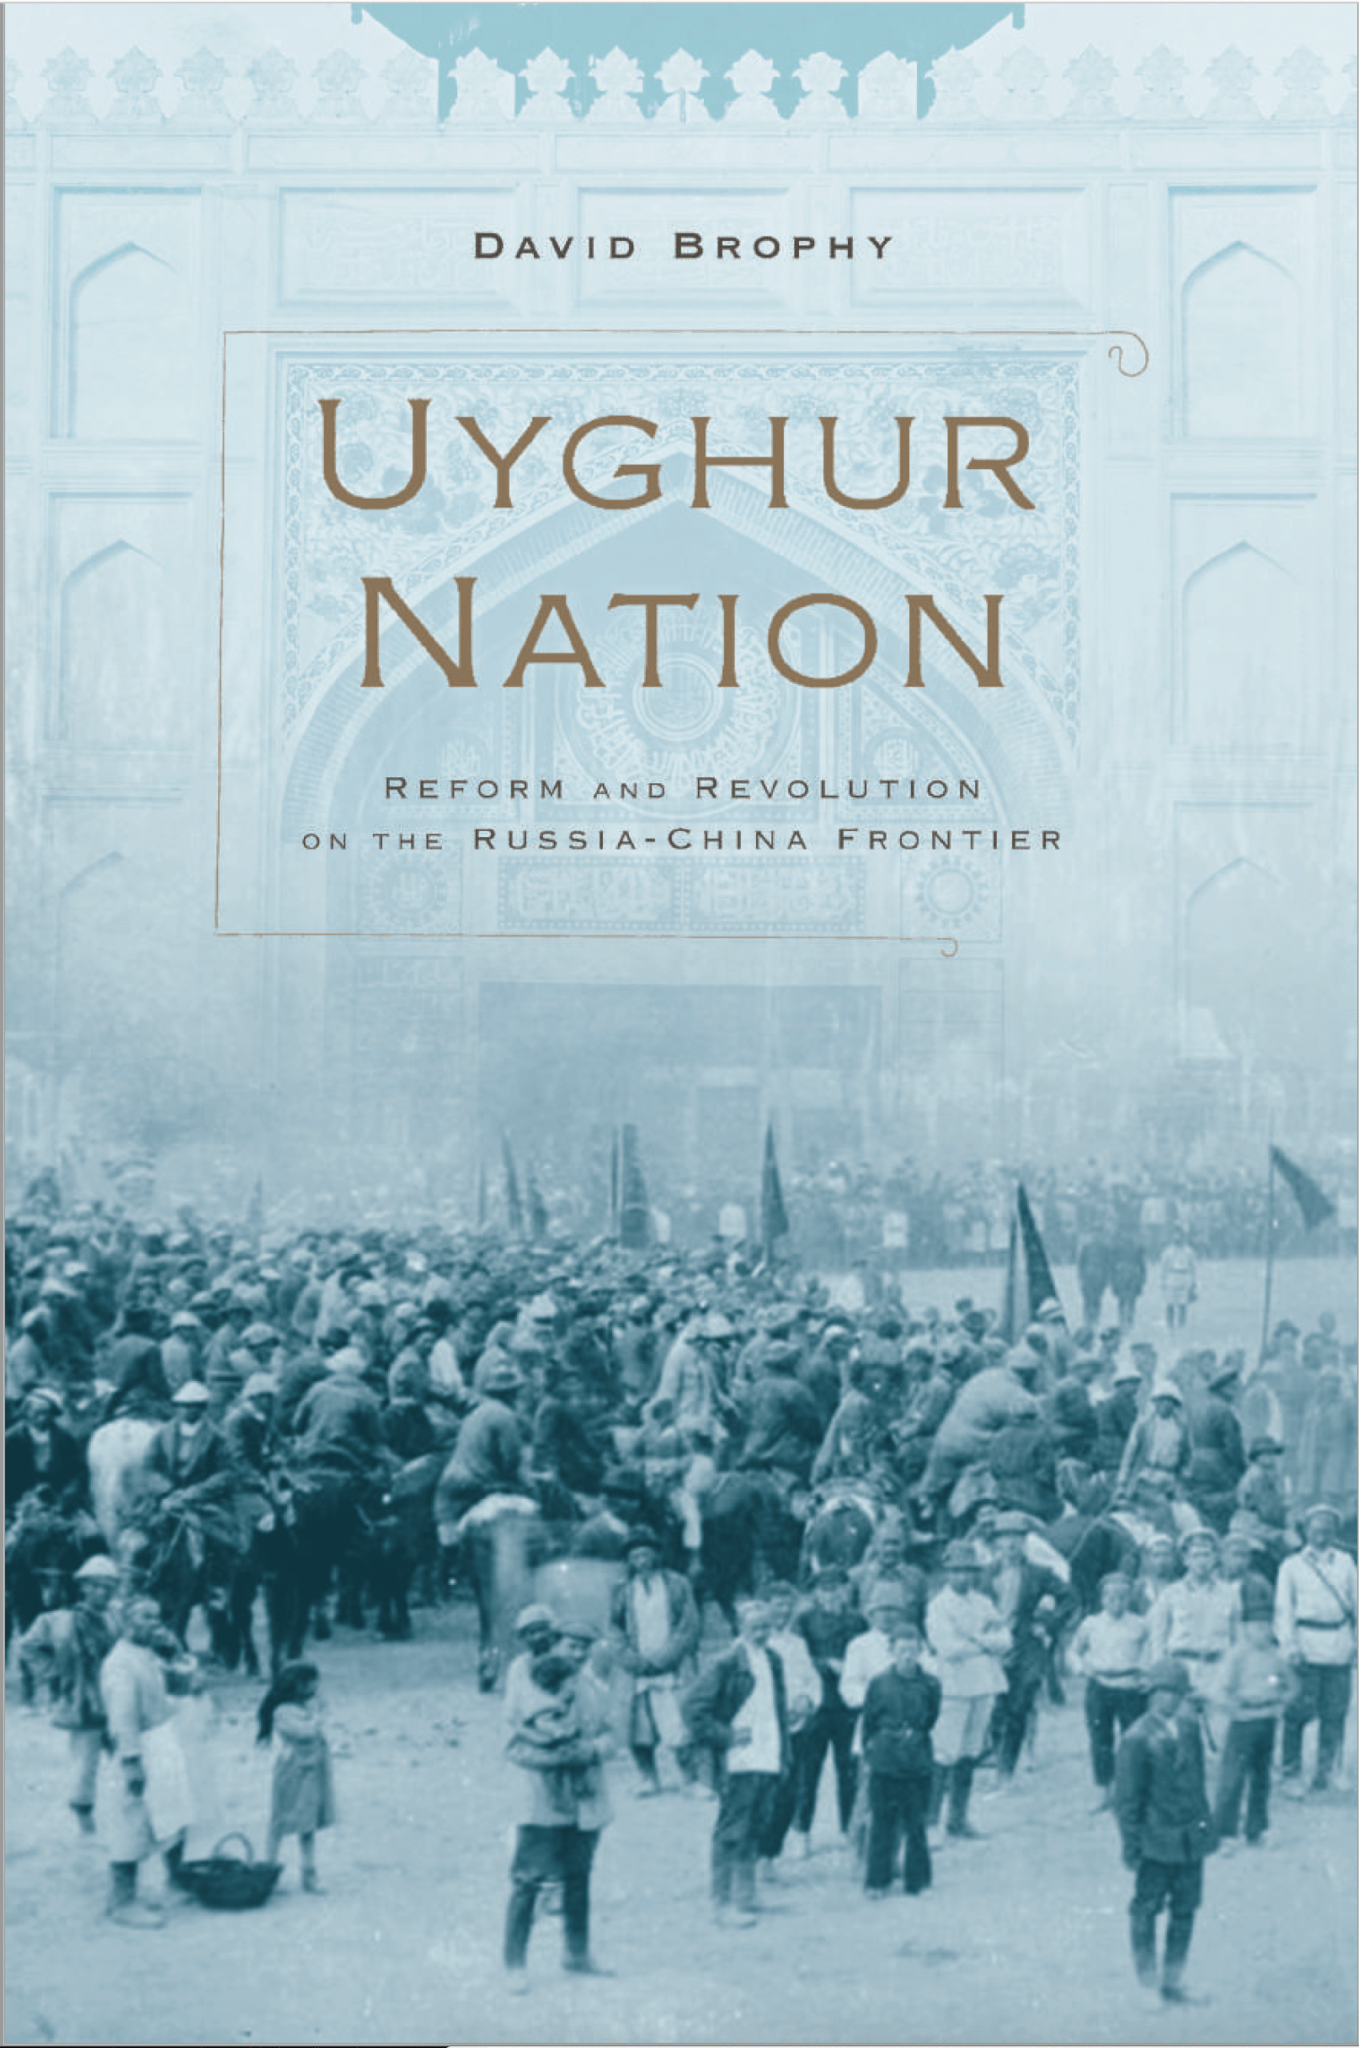 Uyghur Nation: Reform and Revolution on the Russia-China Frontier, ئېلكىتاب تورى